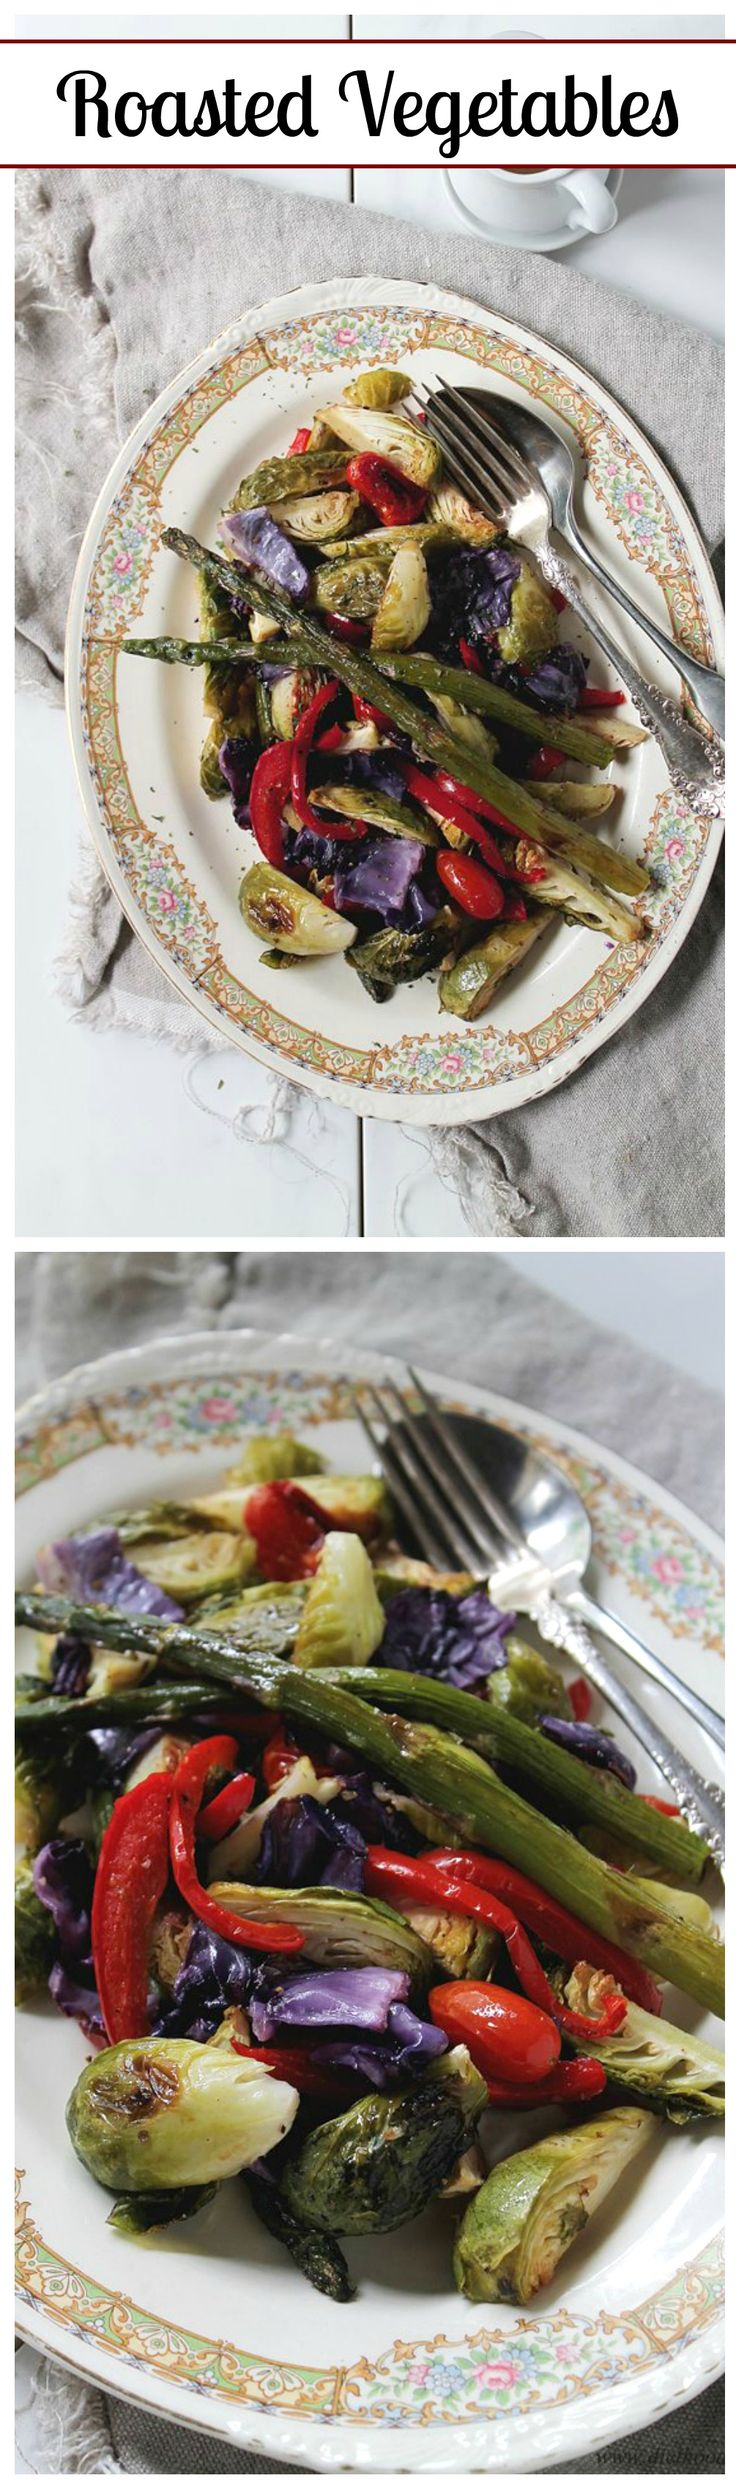 Roasted brussels sprouts, asparagus, red cabbage, peppers, and cherry tomatoes, topped with a delicious, homemade honey mustard dressing.